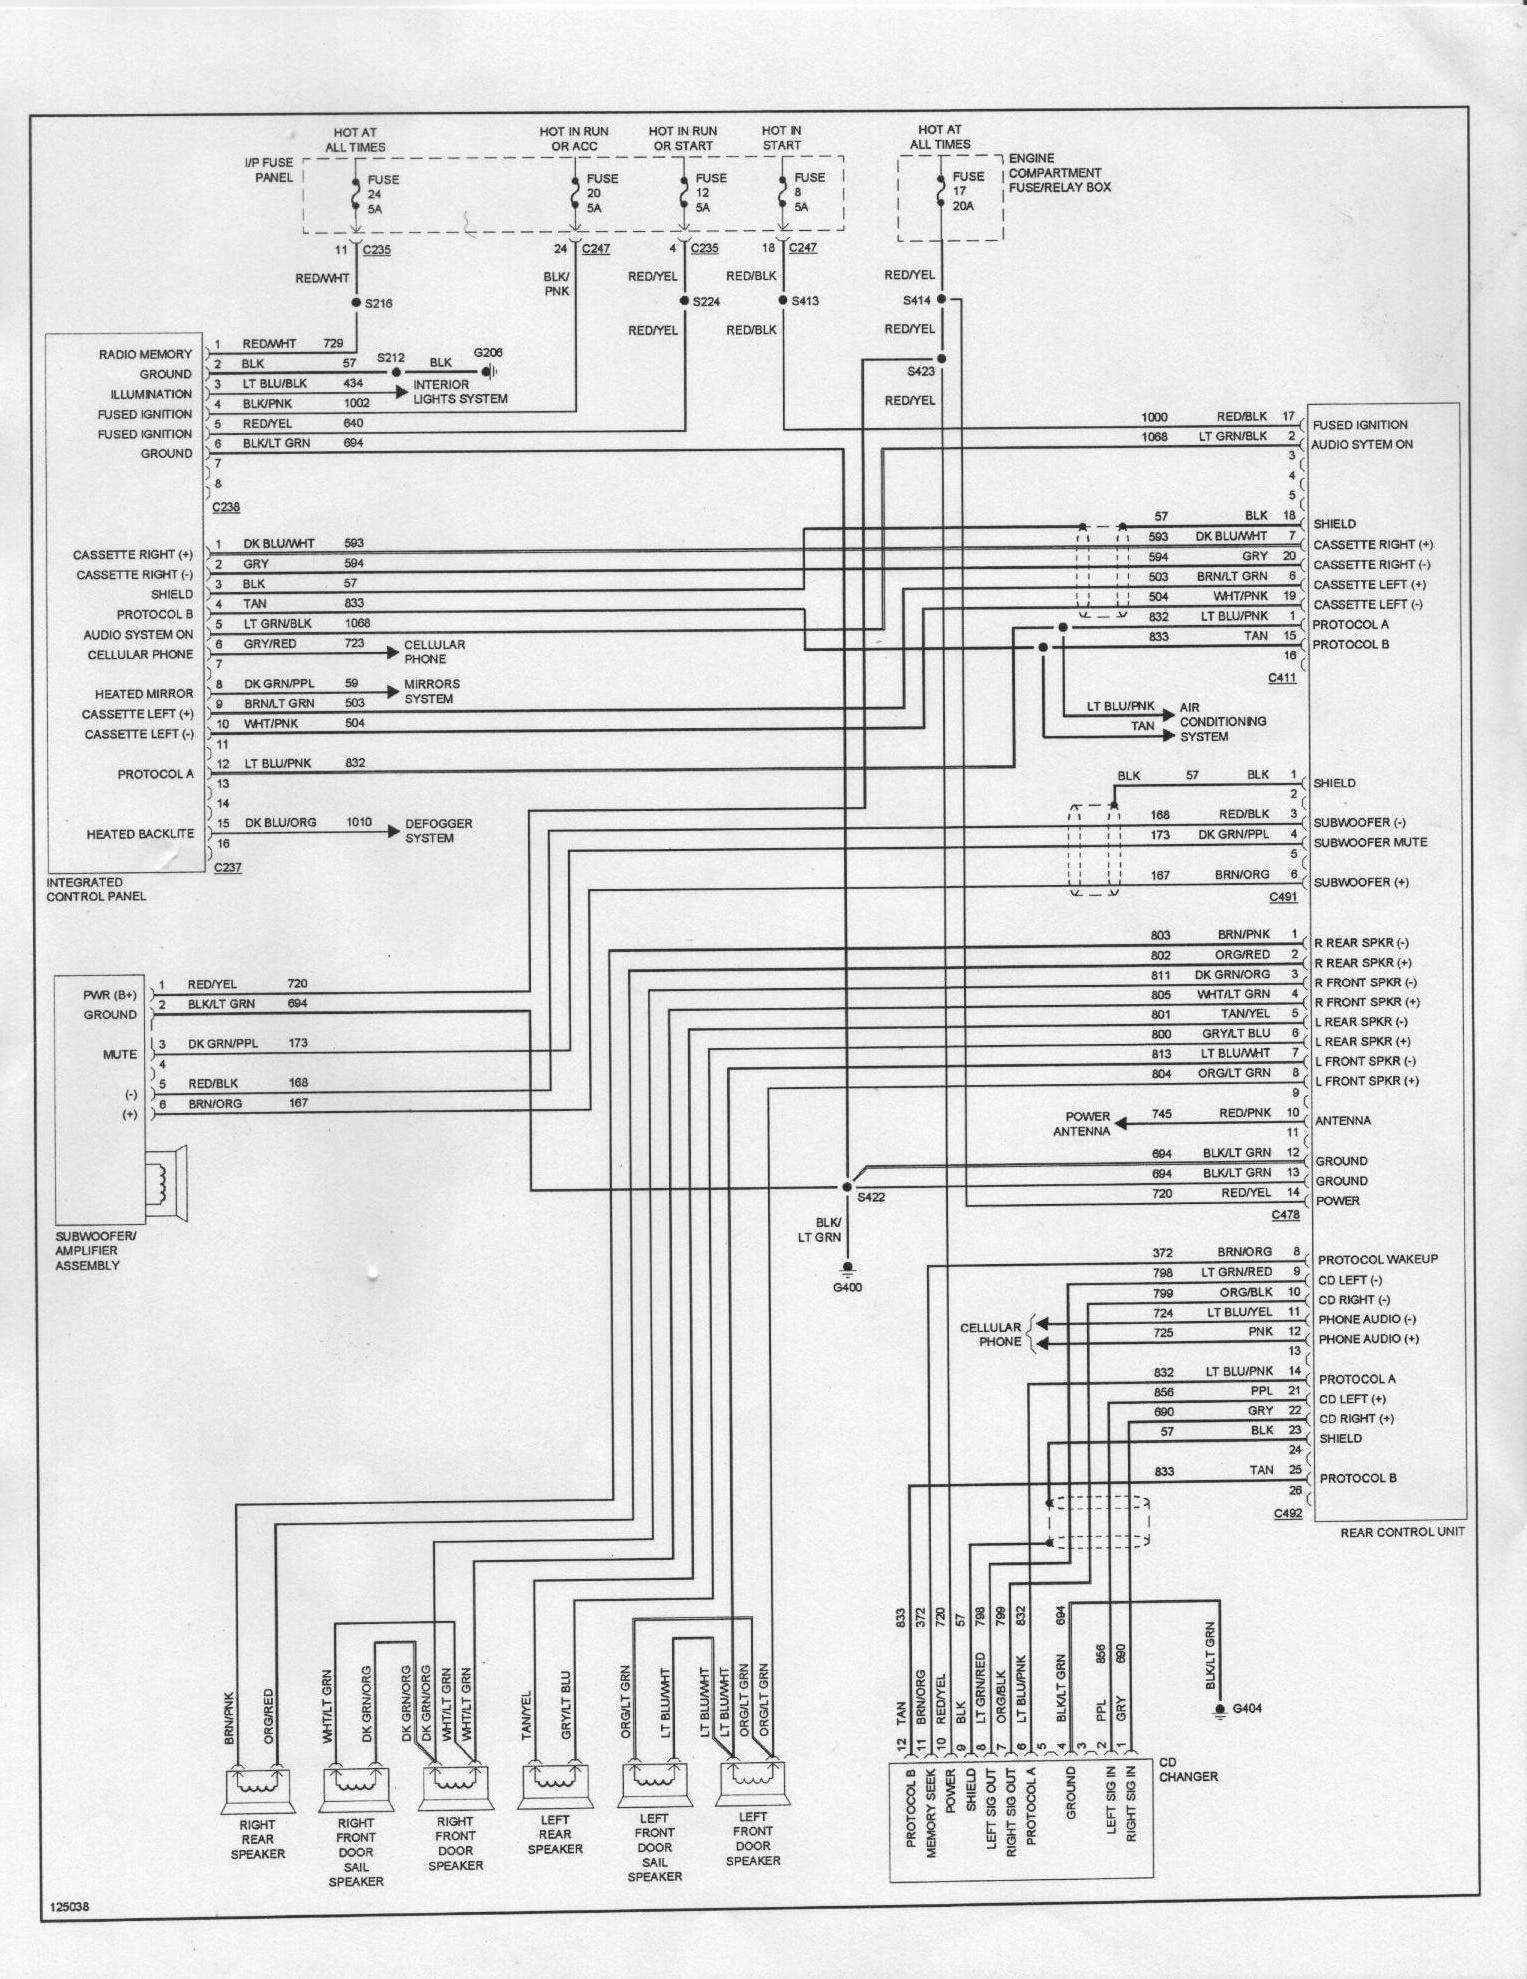 44917d1173064914 wiring diagram ford taurus diagram96 wiring diagram ford taurus taurus car club of america ford 2005 ford taurus wiring diagram at crackthecode.co